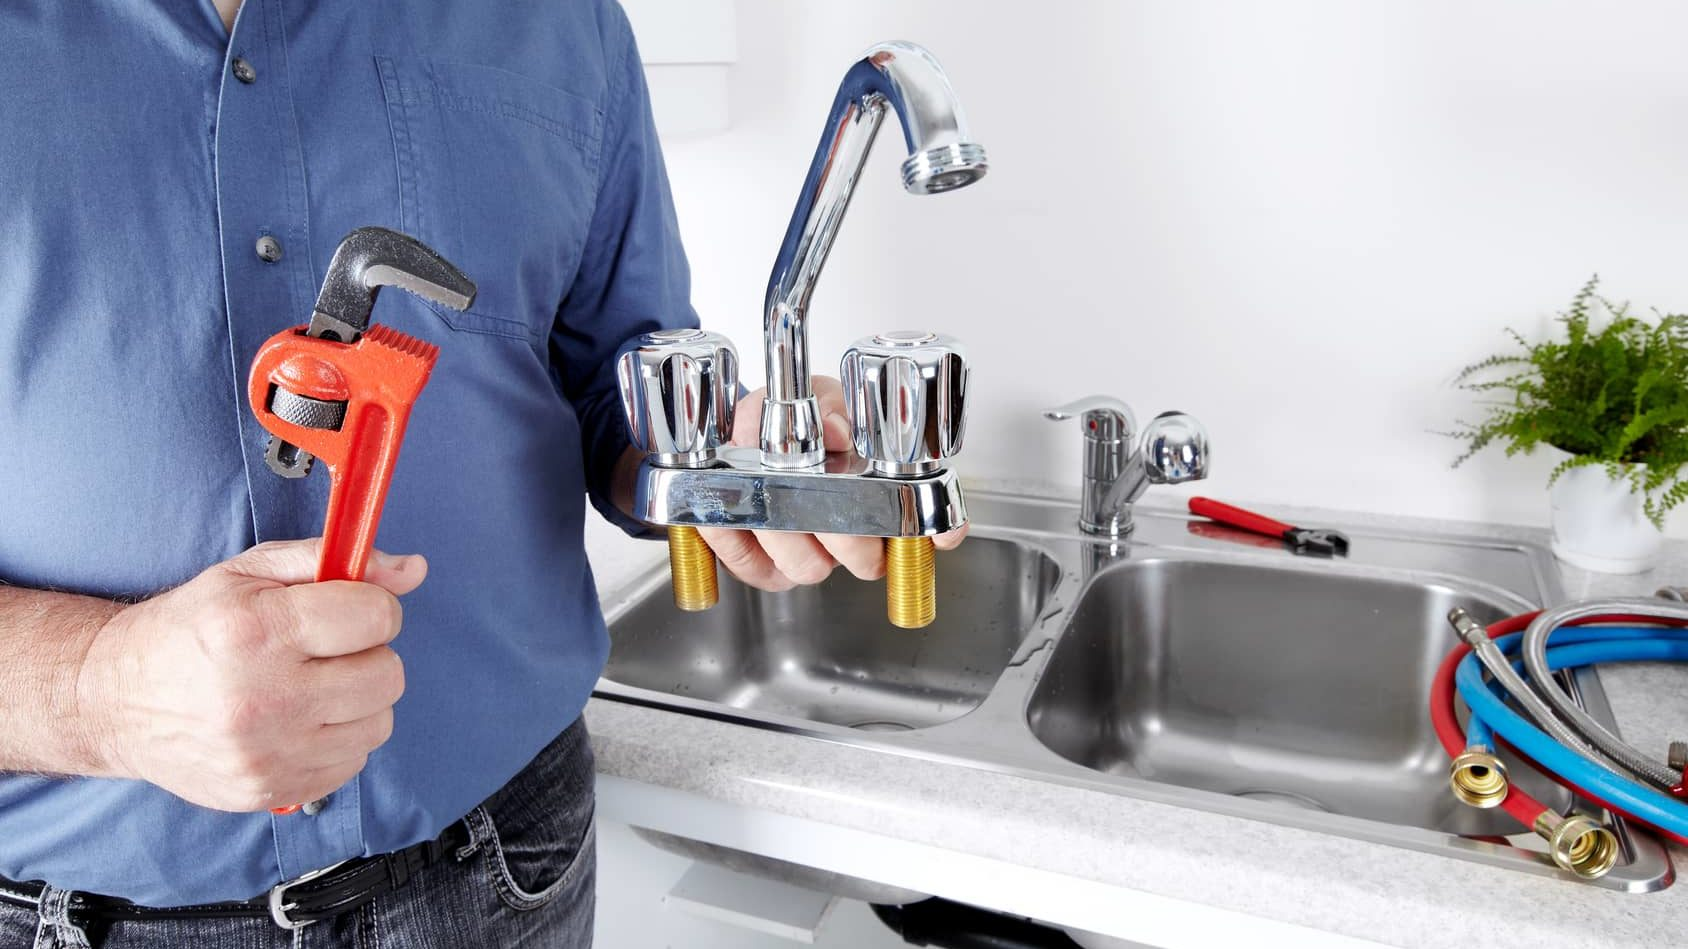 Qualities of a responsible and professional plumber